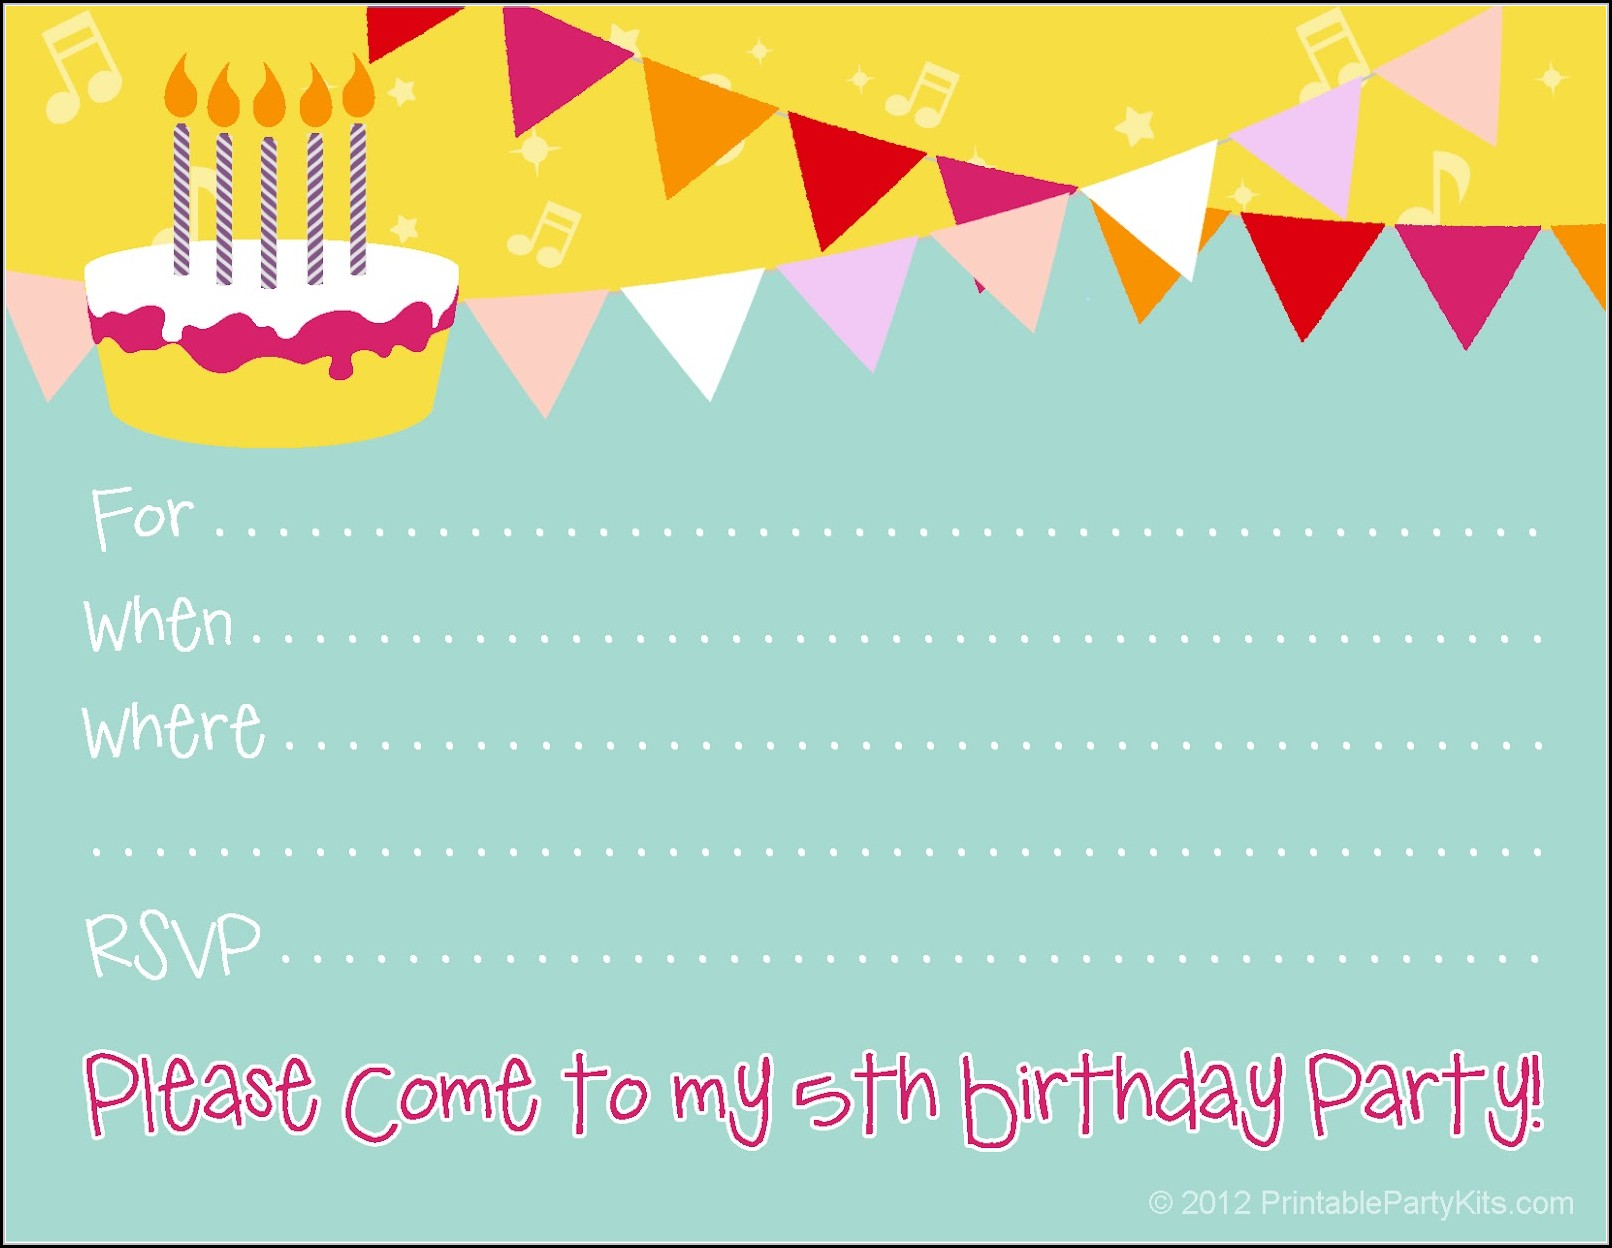 Birthday Party Invitation Card Template Free